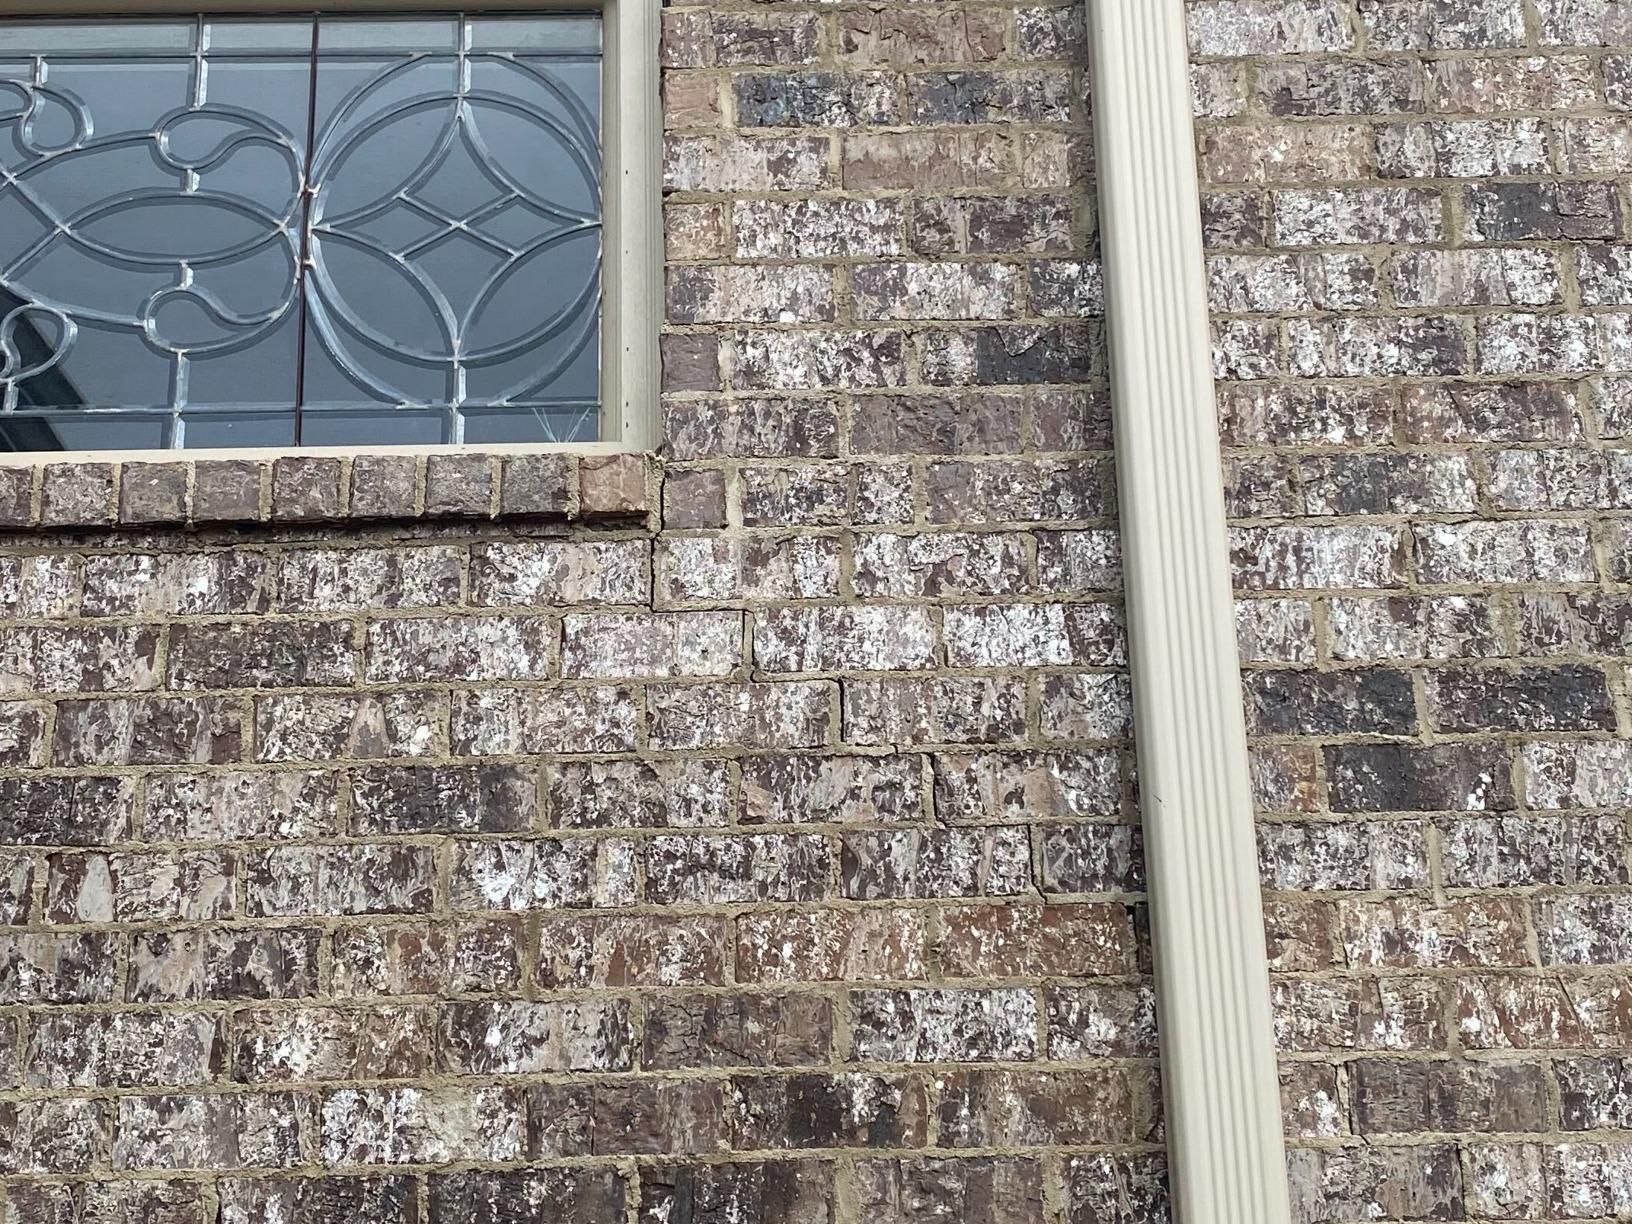 Piering Project in Corinth Mississippi Cures Cracks in Brick Wall - After Photo